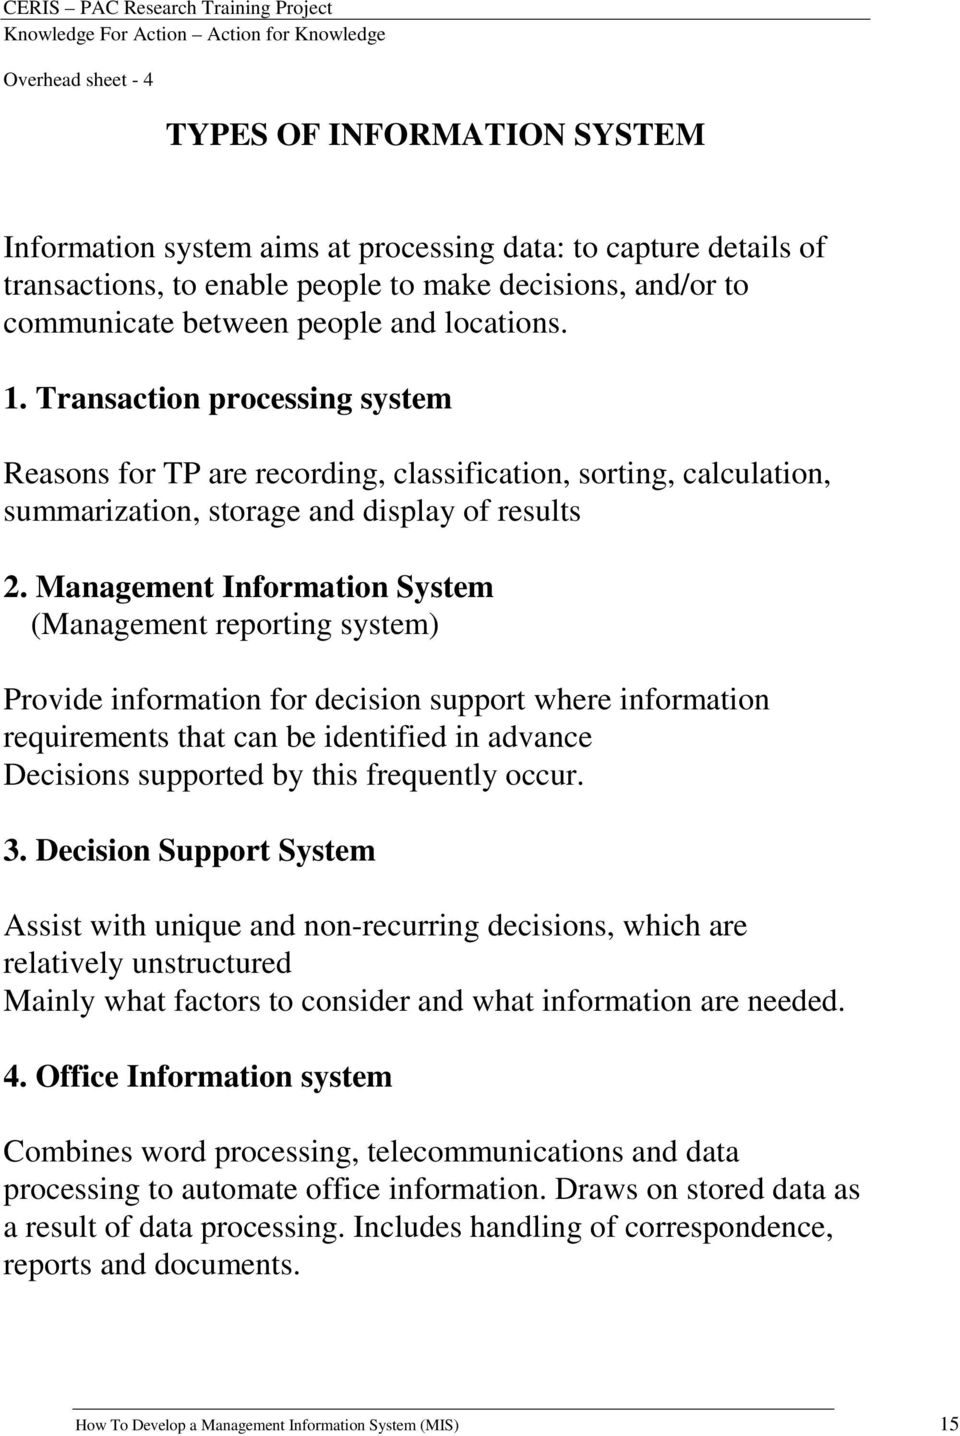 Management Information System (Management reporting system) Provide information for decision support where information requirements that can be identified in advance Decisions supported by this